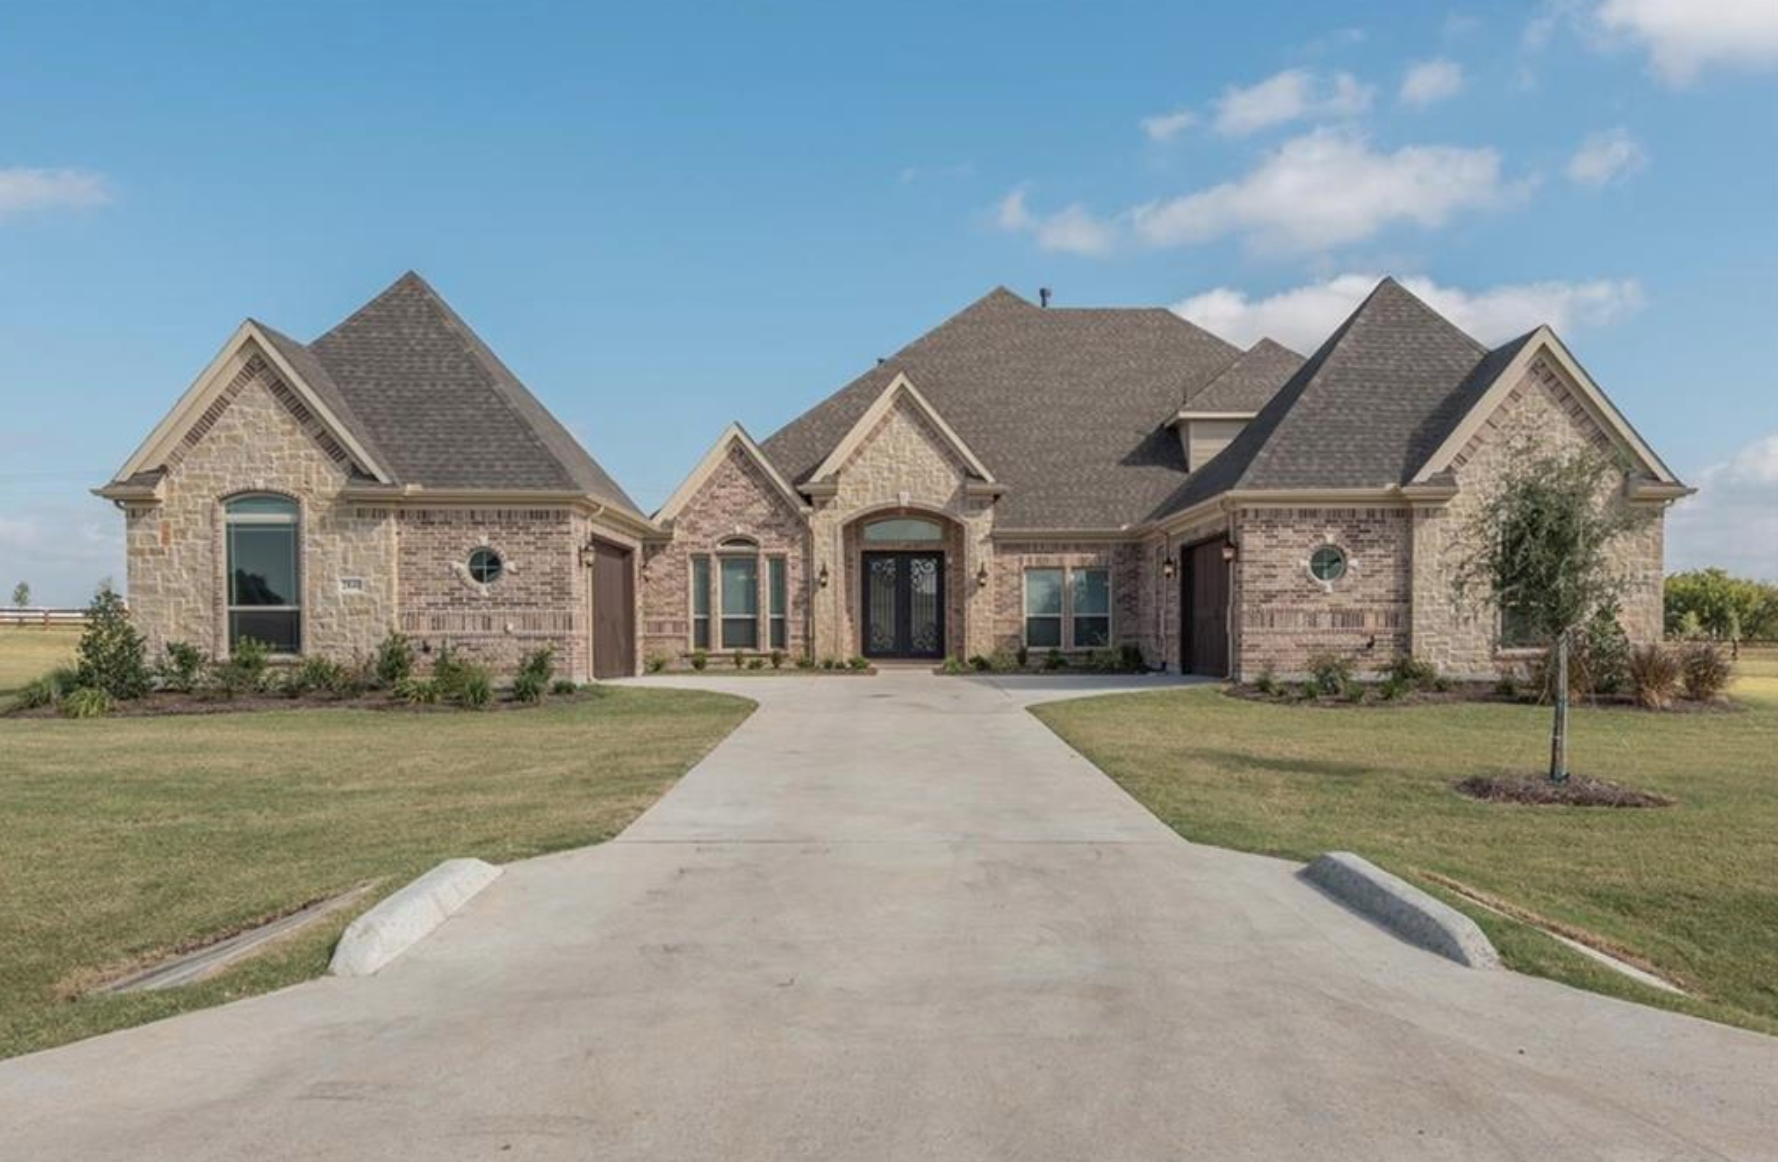 Newest Homes for Sale in Denton County